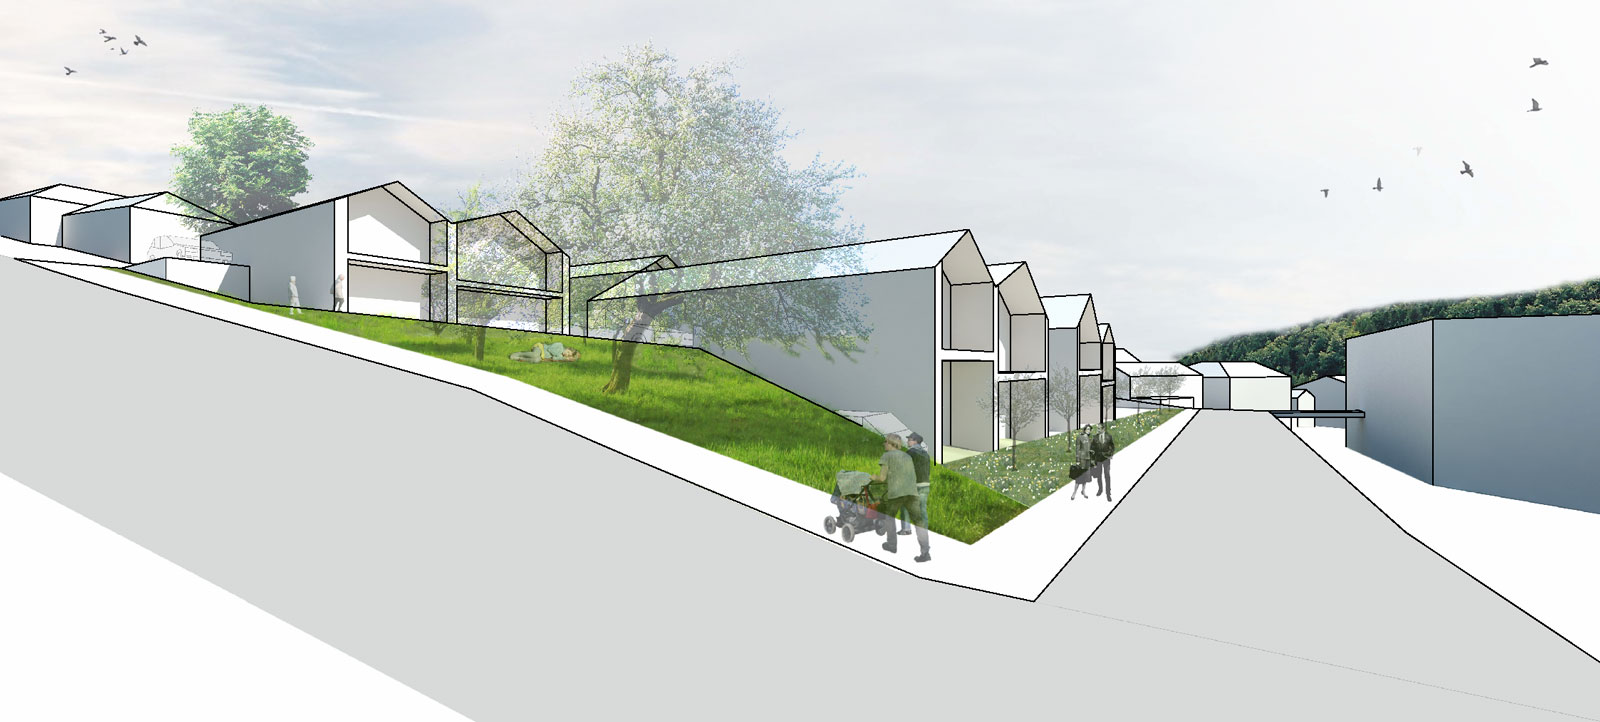 Doyouspacehousing for disabled competition in epalinges for Home for handicapped